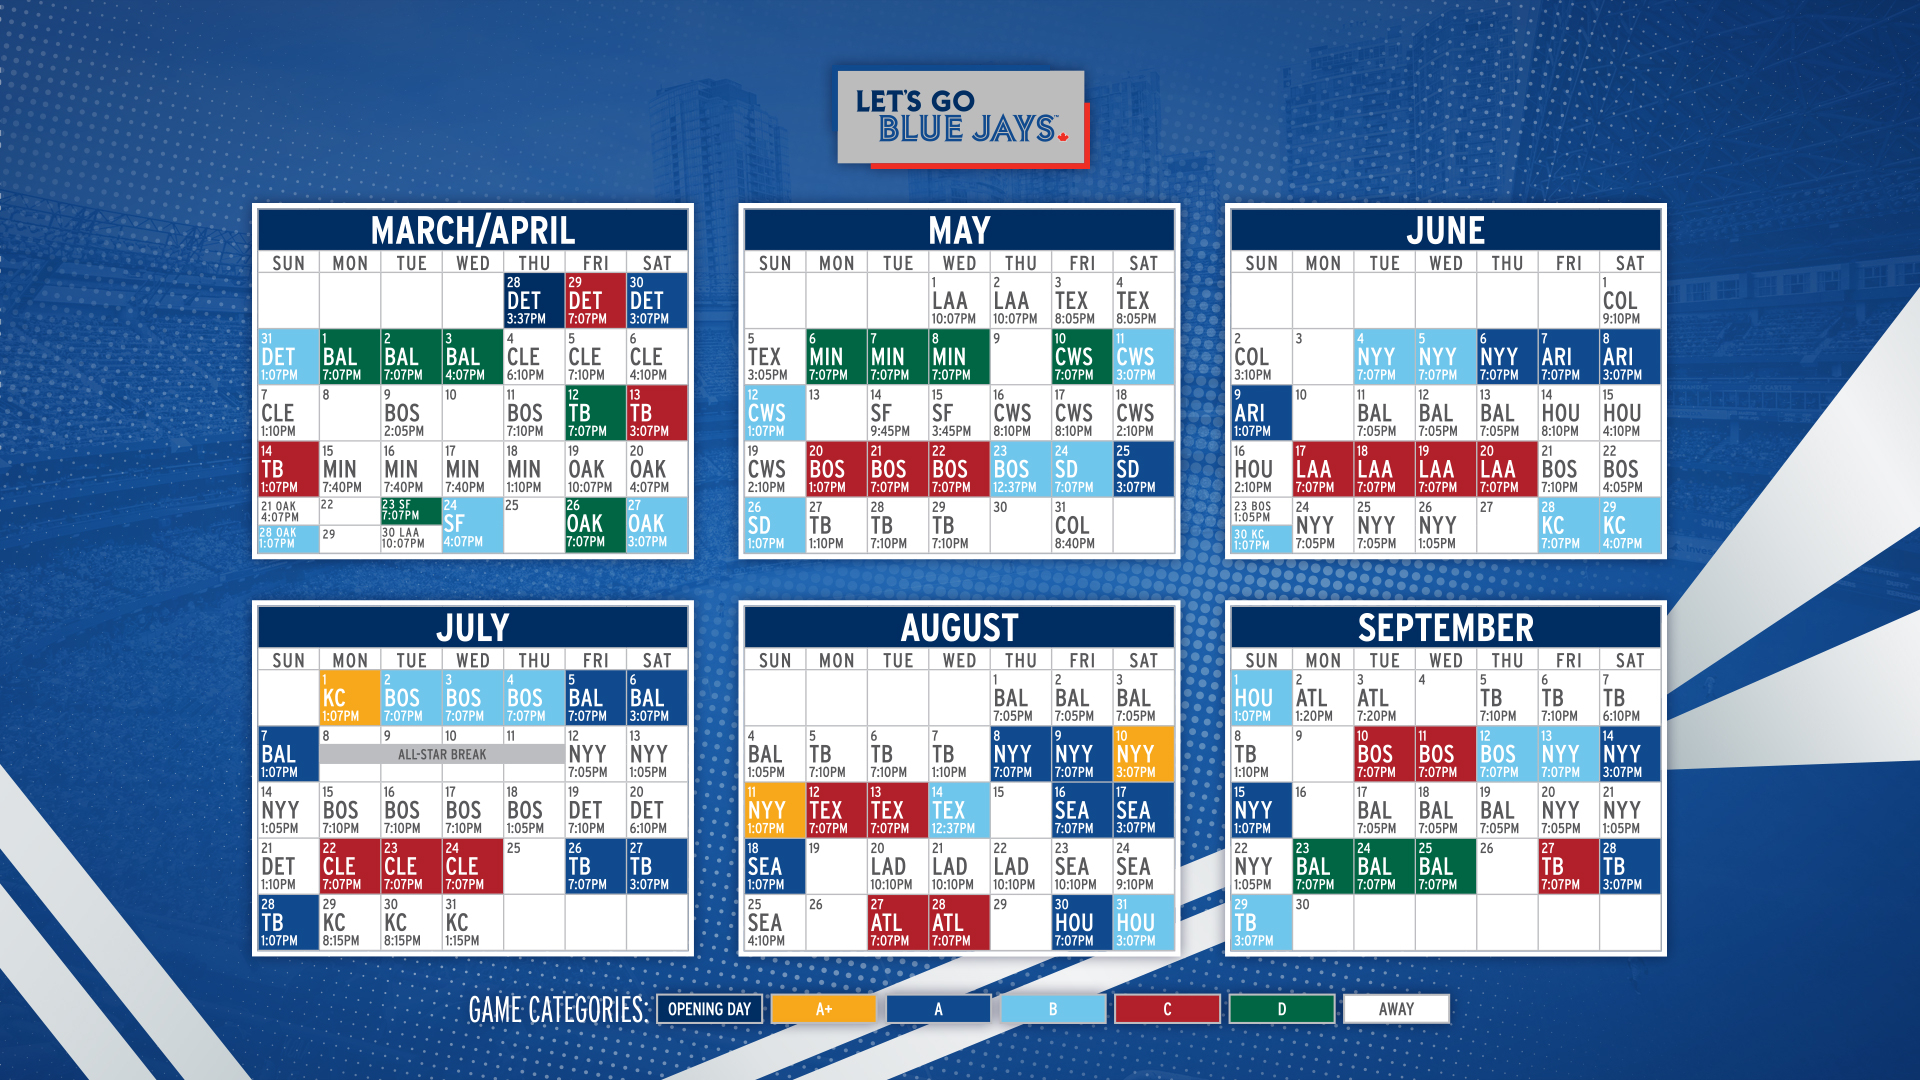 Wallpapers And Covers | Toronto Blue Jays within Atlanta Braves Schedule 2020 Printable